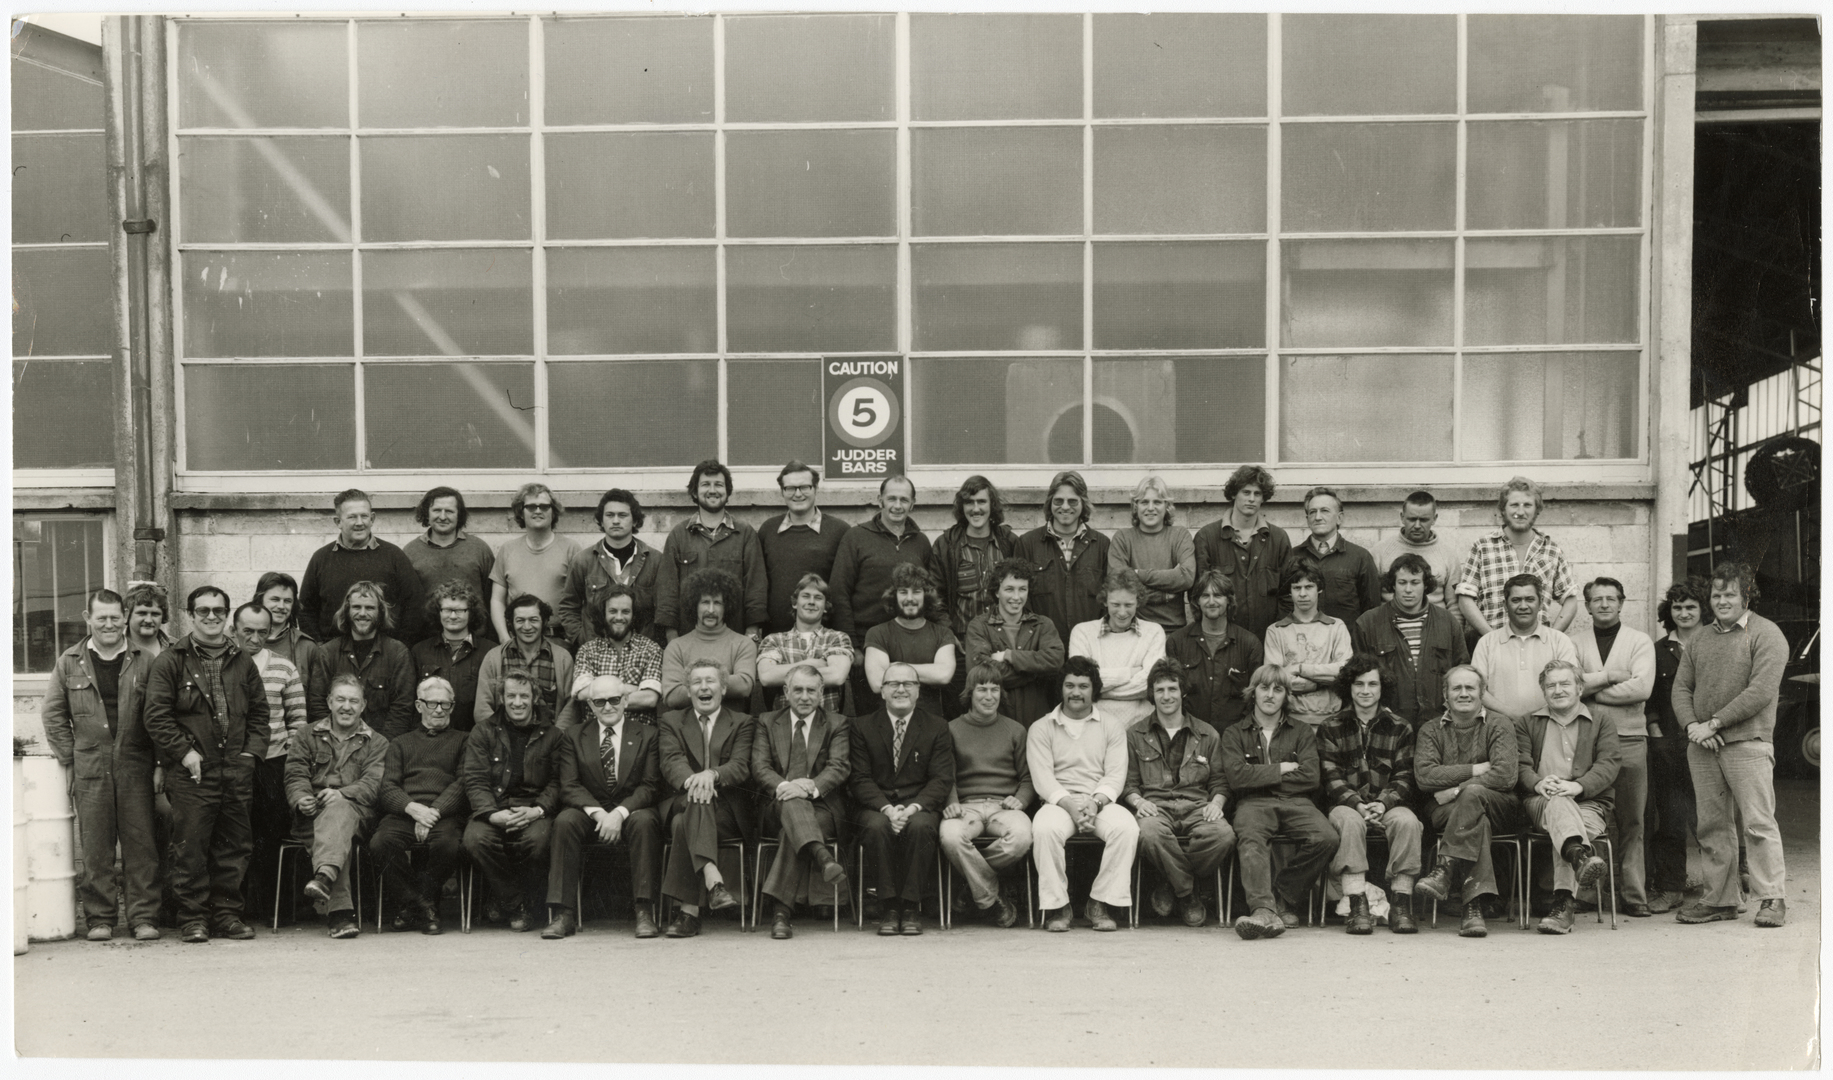 Staff group photograph of Line workers at the Municipal Electricity Department in 1970.